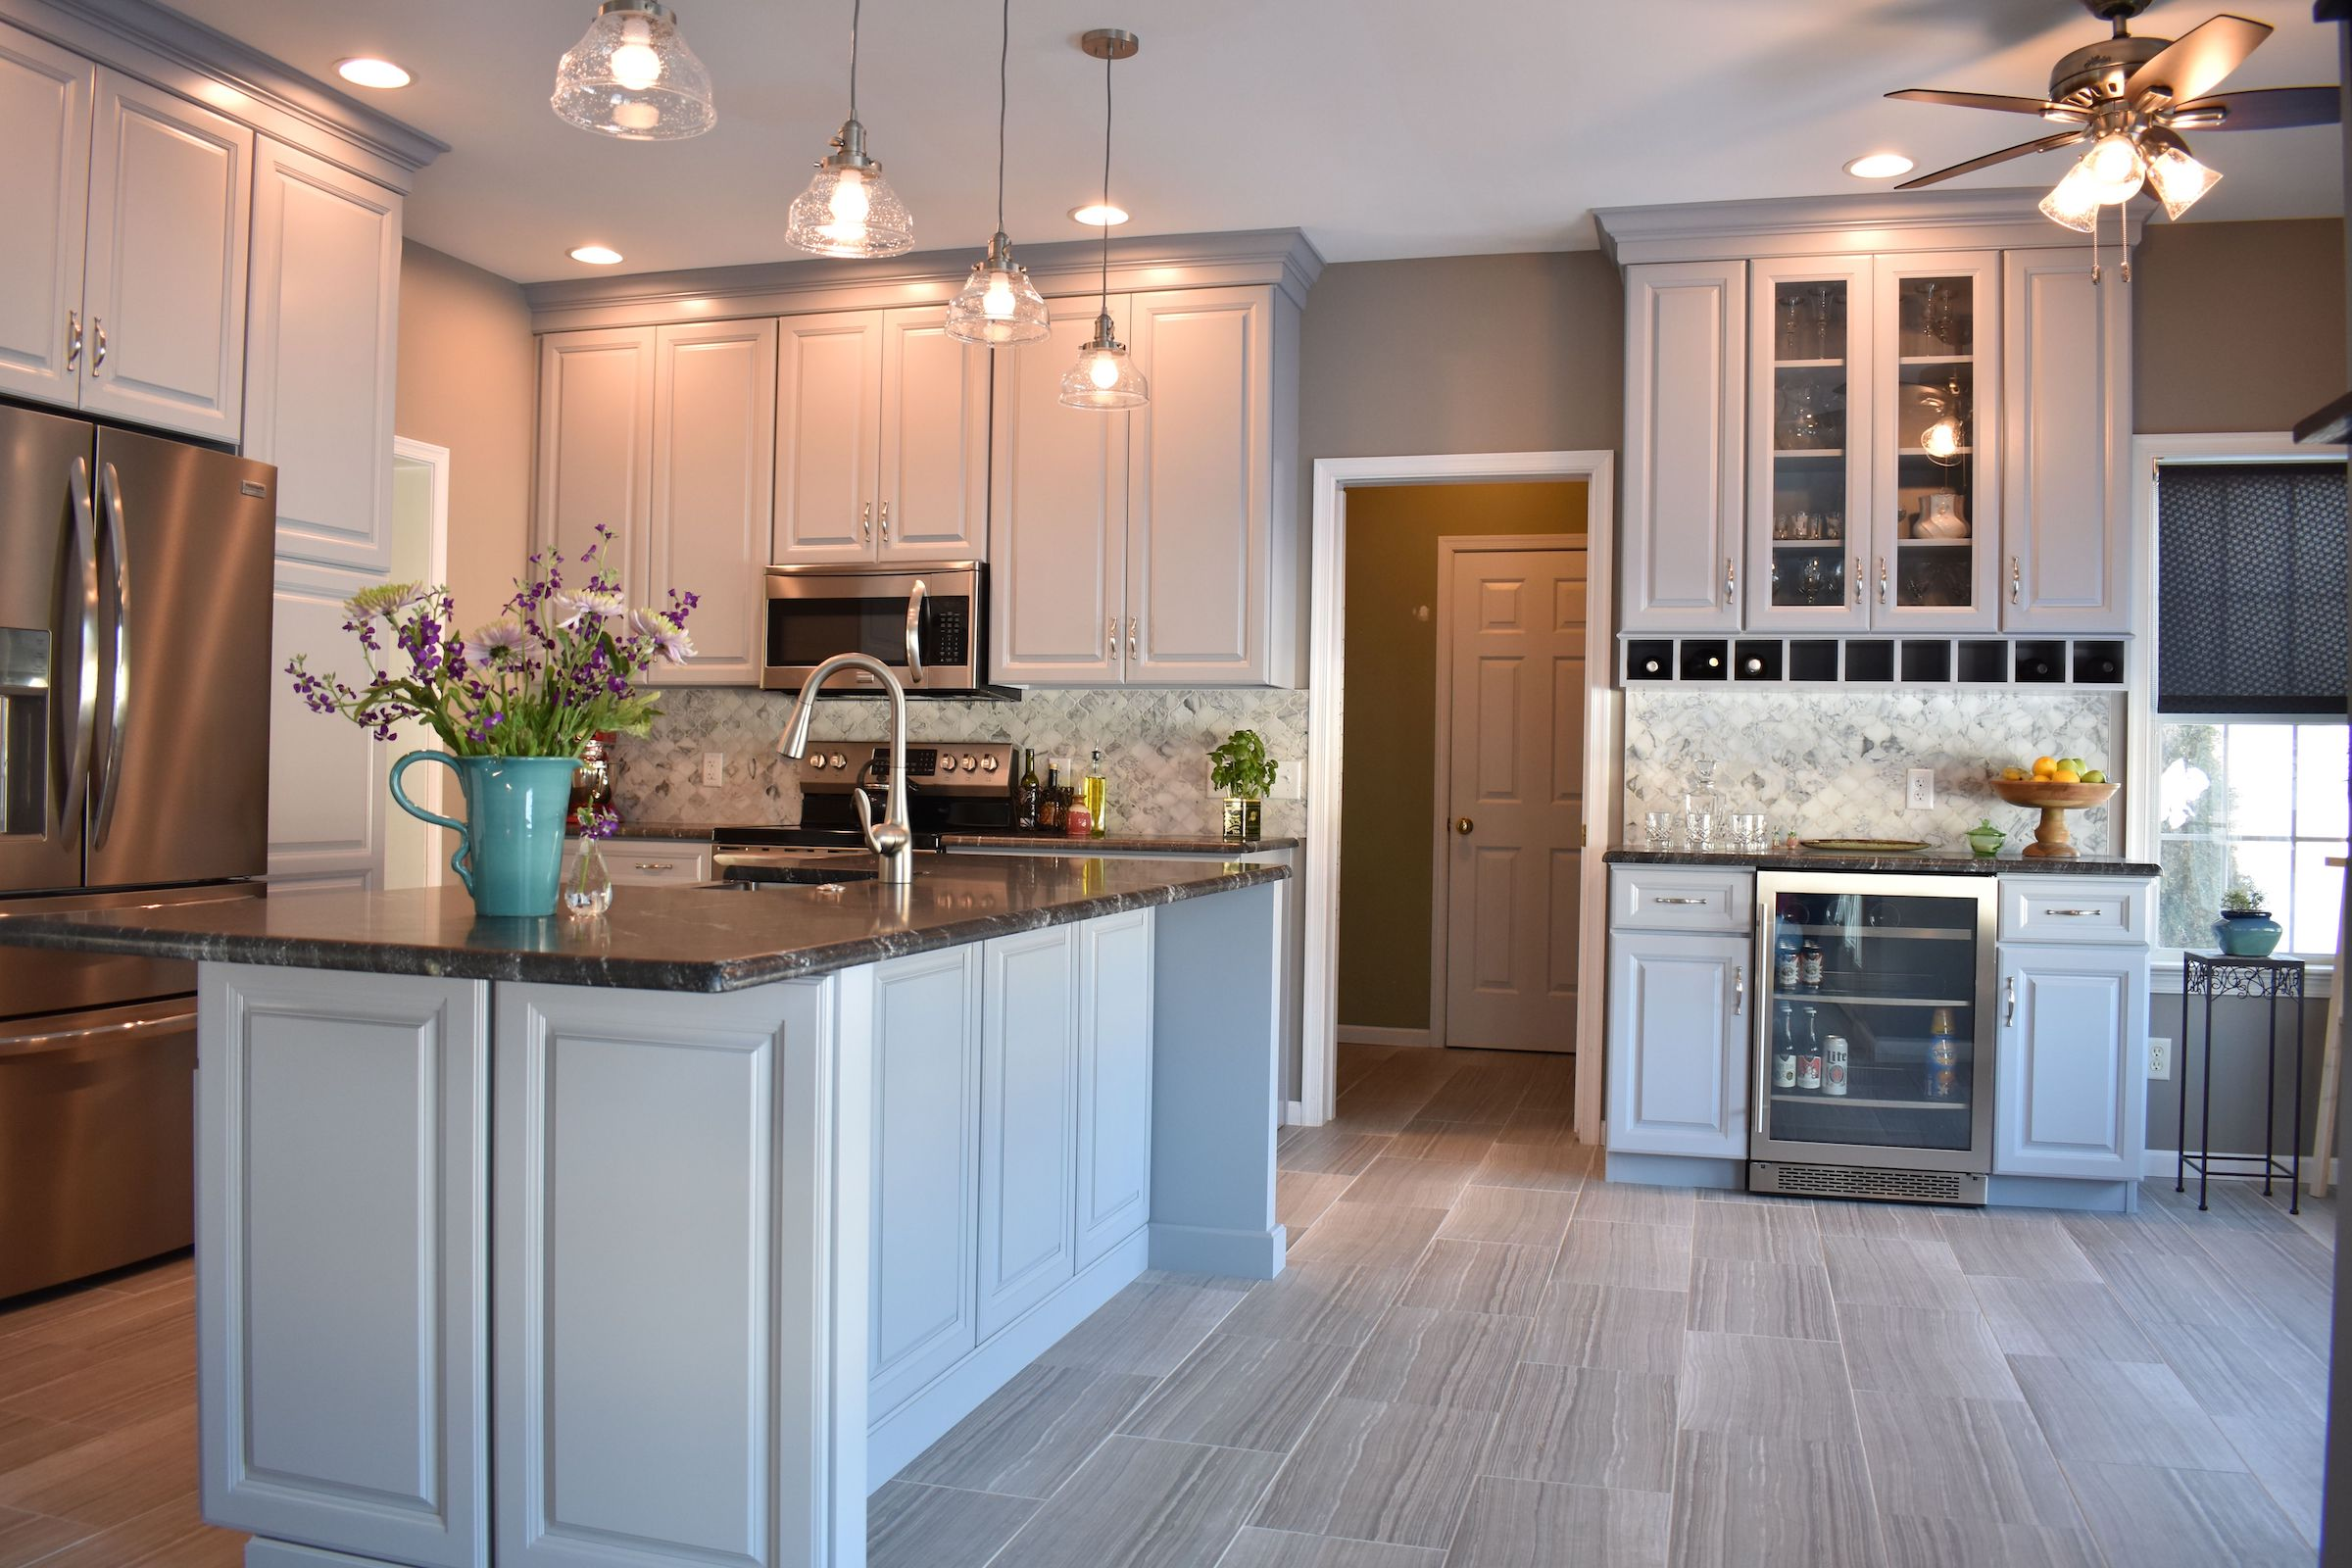 Rm Kitchens Inc Custom Cabinet Makers Installers In Pa Custom Cabinetry